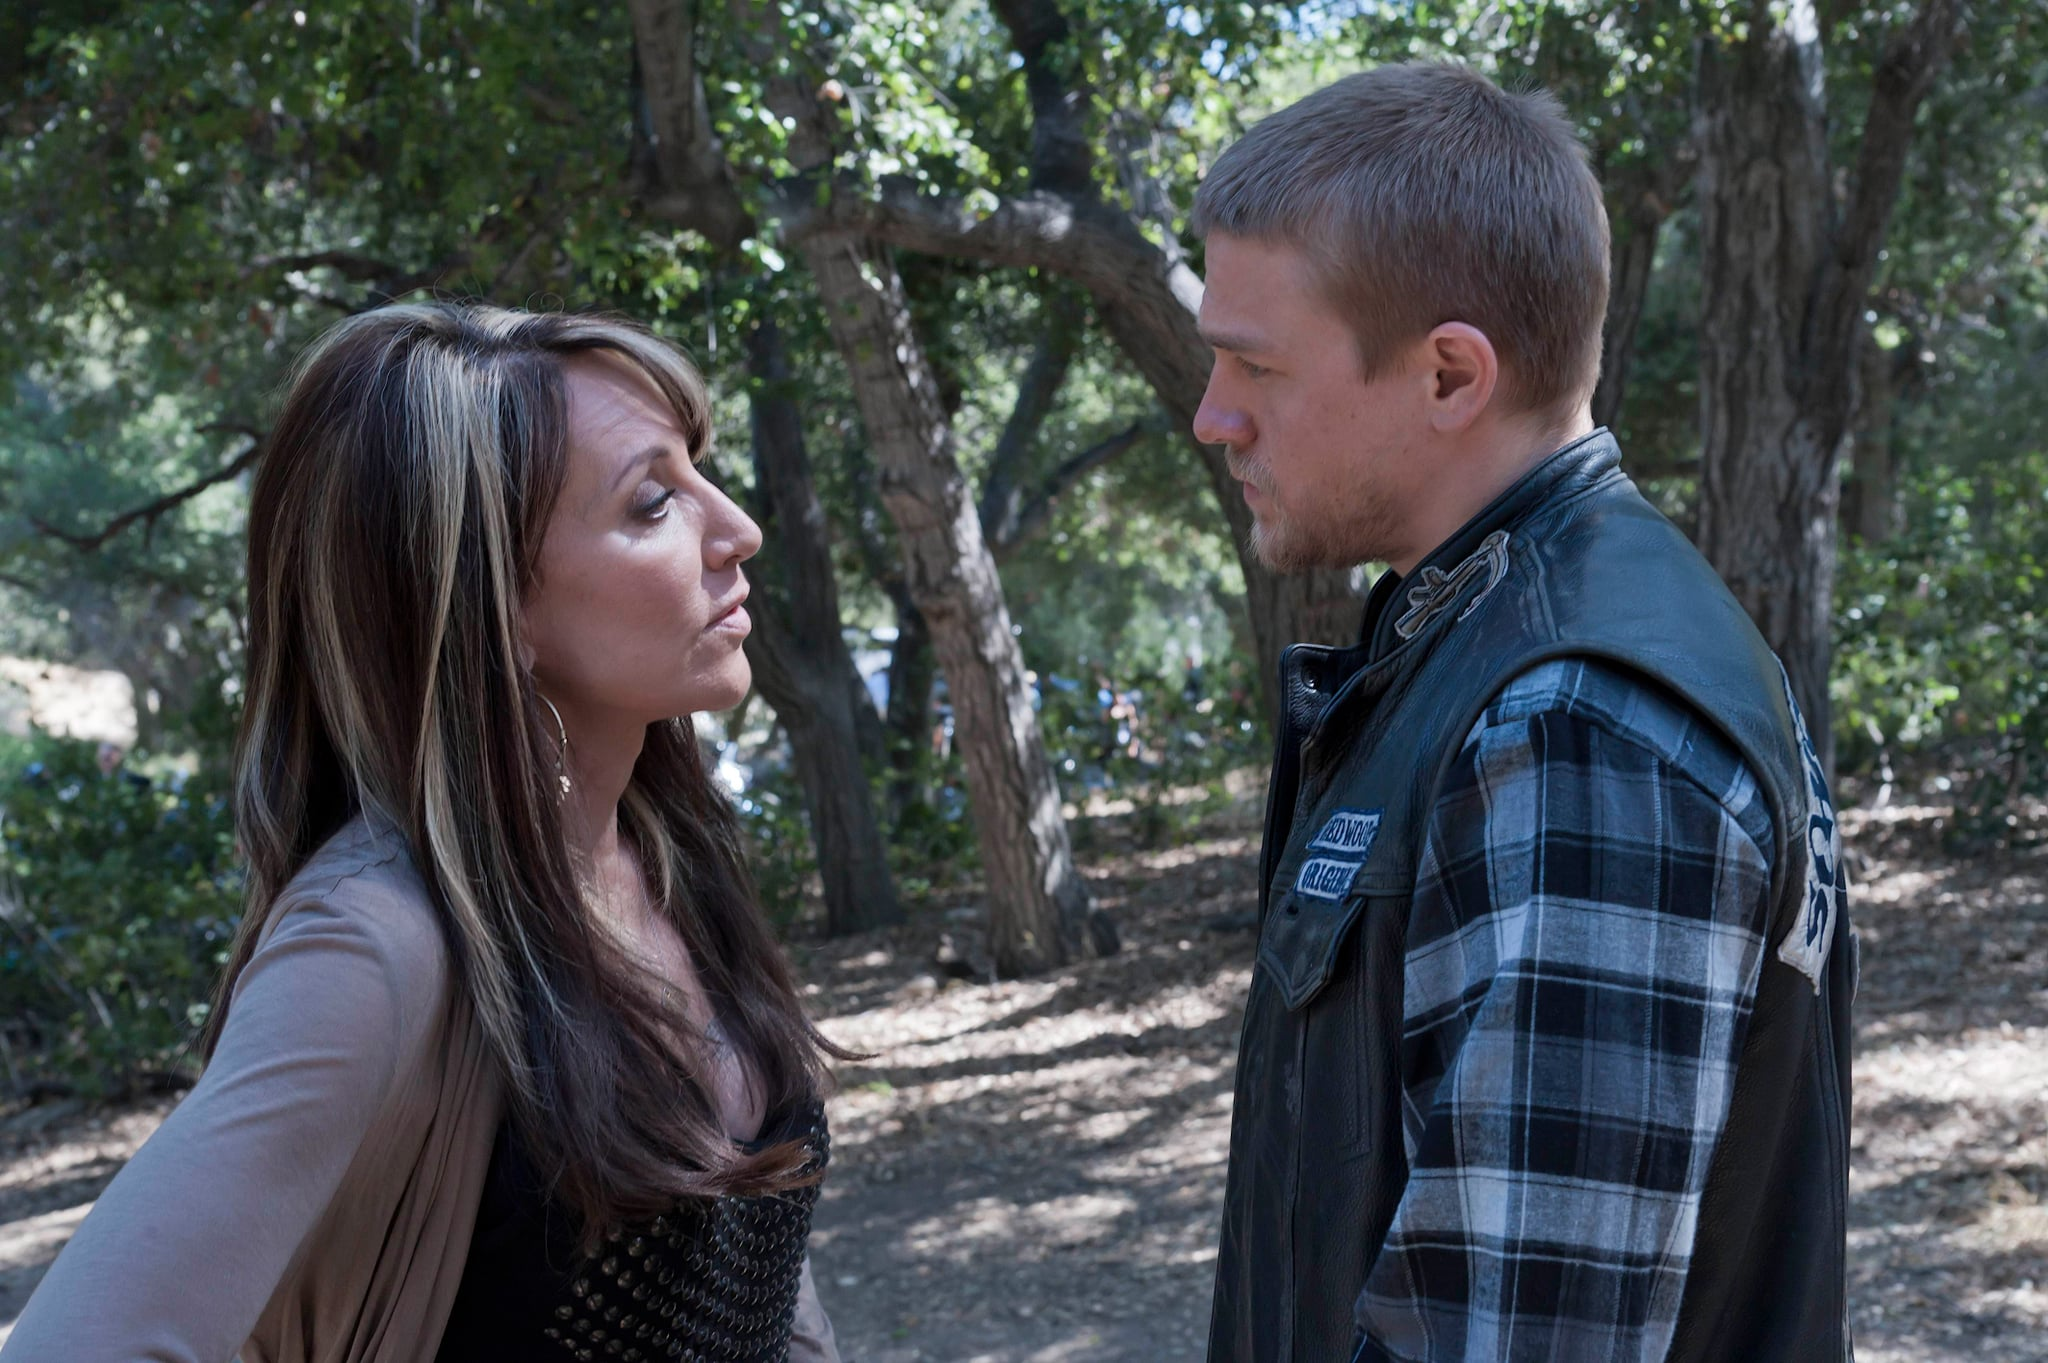 SONS OF ANARCHY, (from left): Katey Sagal, Charlie Hunnam, 'Out', (Season 4, ep. 401, aired Sept. 6, 2011), 2008-. photo: Prashant Gupta /  FX / Courtesy: Everett Collection